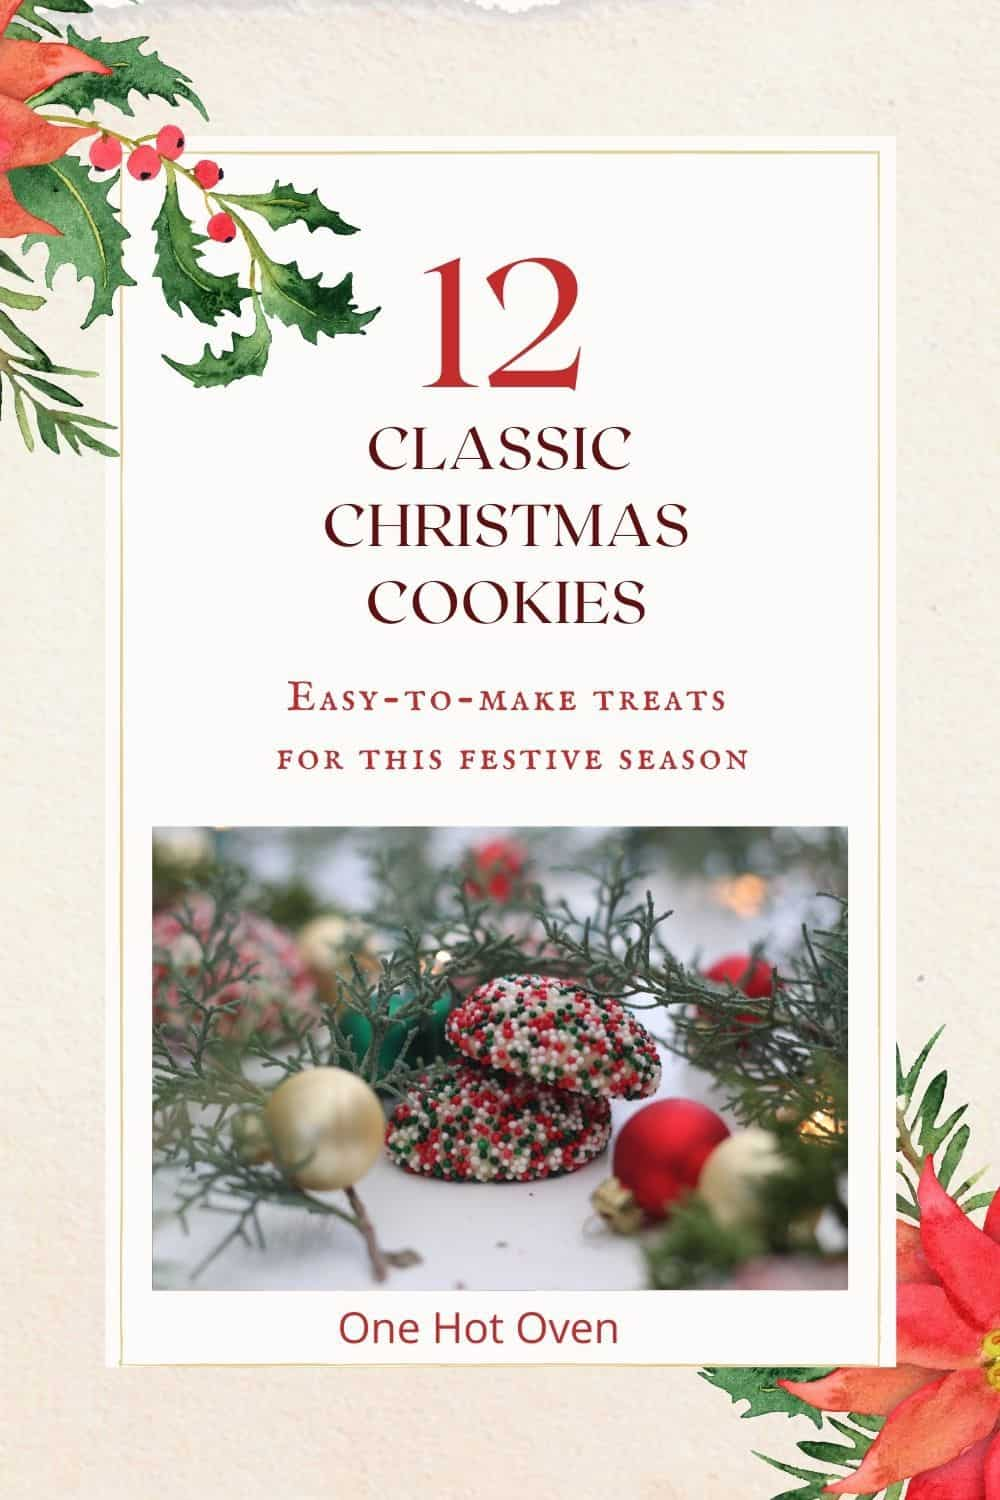 A pin for 12 recipes for Christmas Cookies